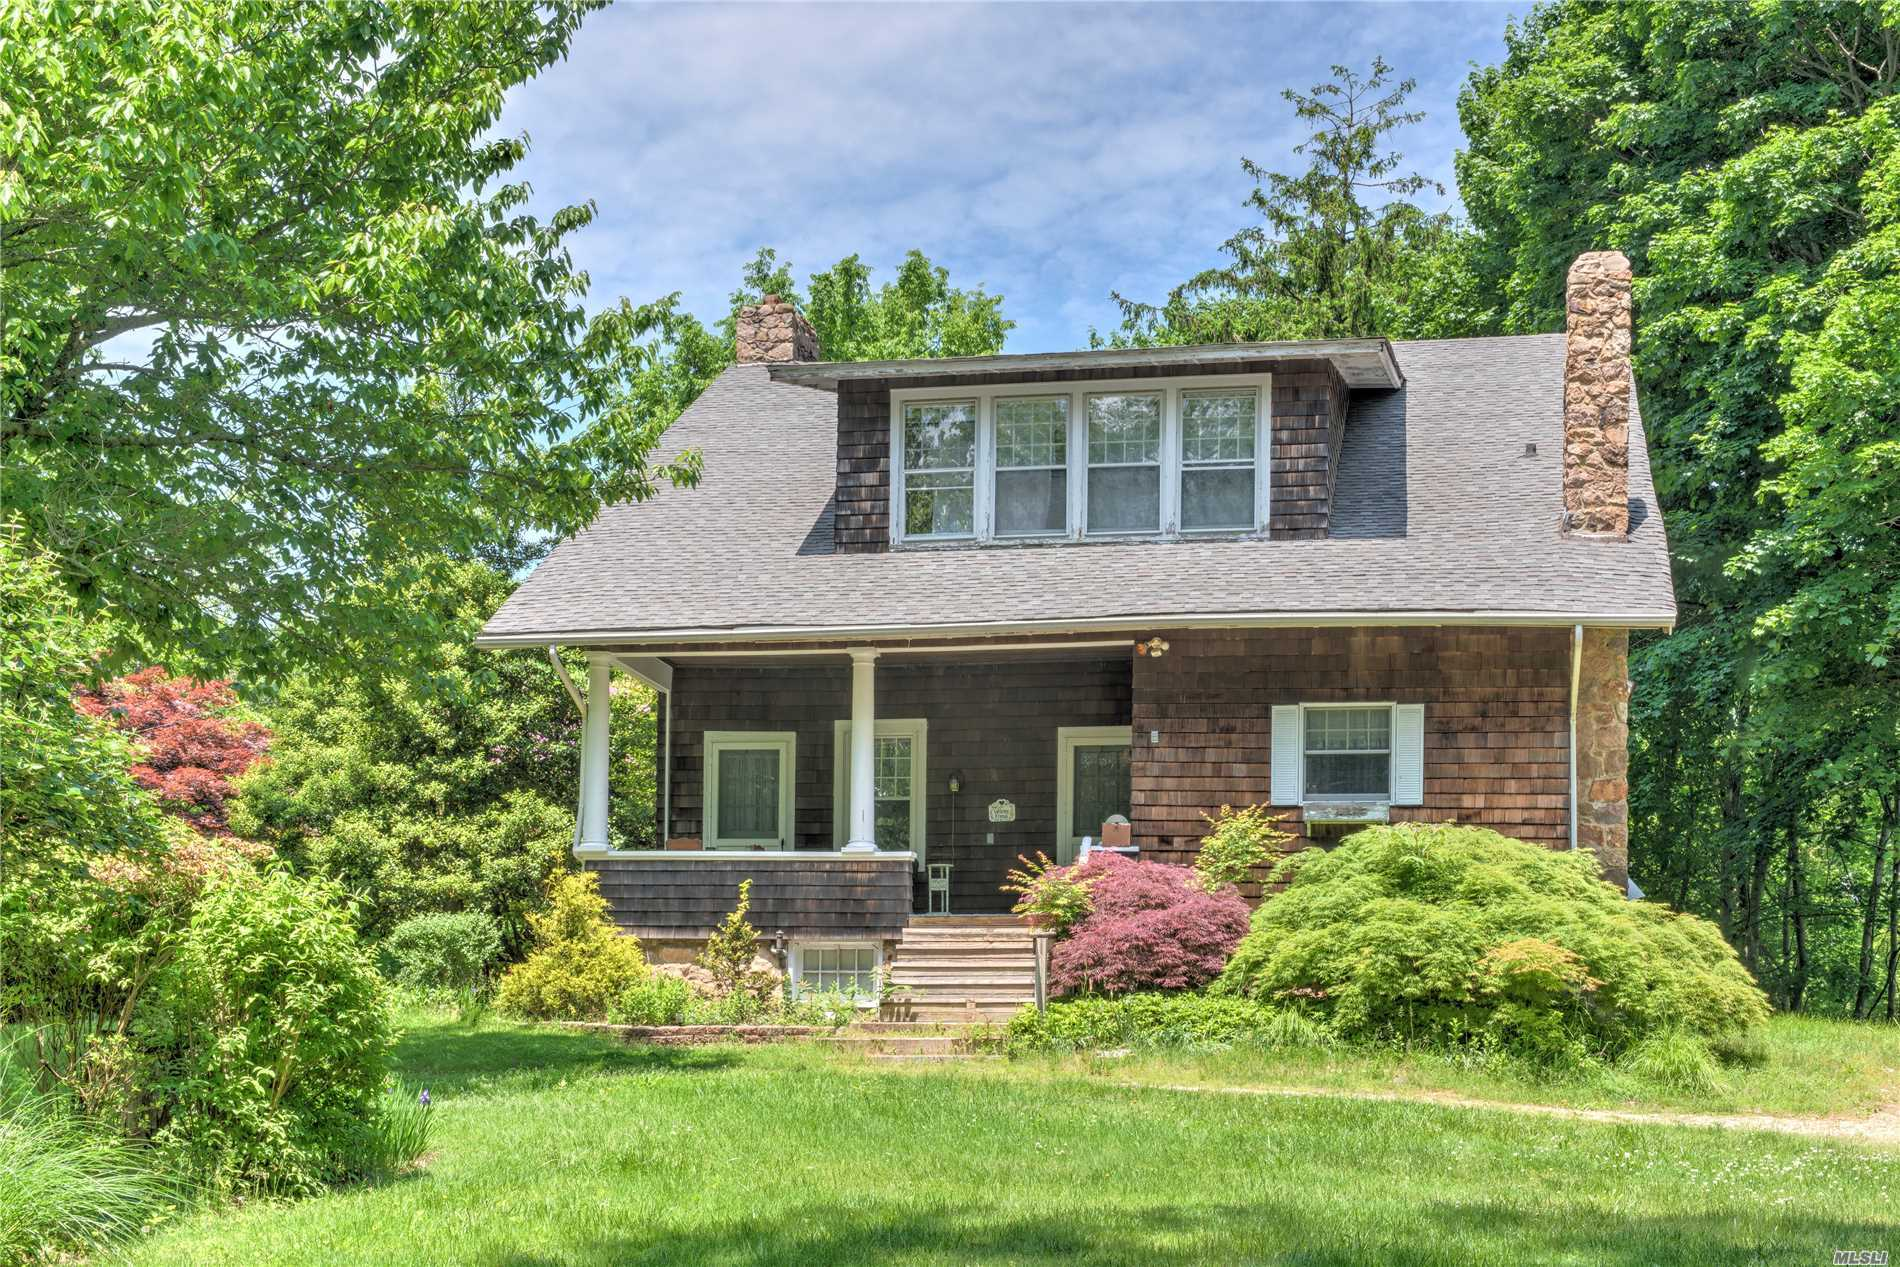 Grand Waterview Cedar Shingled Craftsman Only Steps From The Long Island Sound. 5 Bedrooms, 2 Baths. 2 Fireplaces, Kitchen, Dining Room And Huge Porch Overlooking The 1.4 Acre Park Like Grounds Perched Above The Long Island Sound A Short Distance Away. Convenient To Everything.